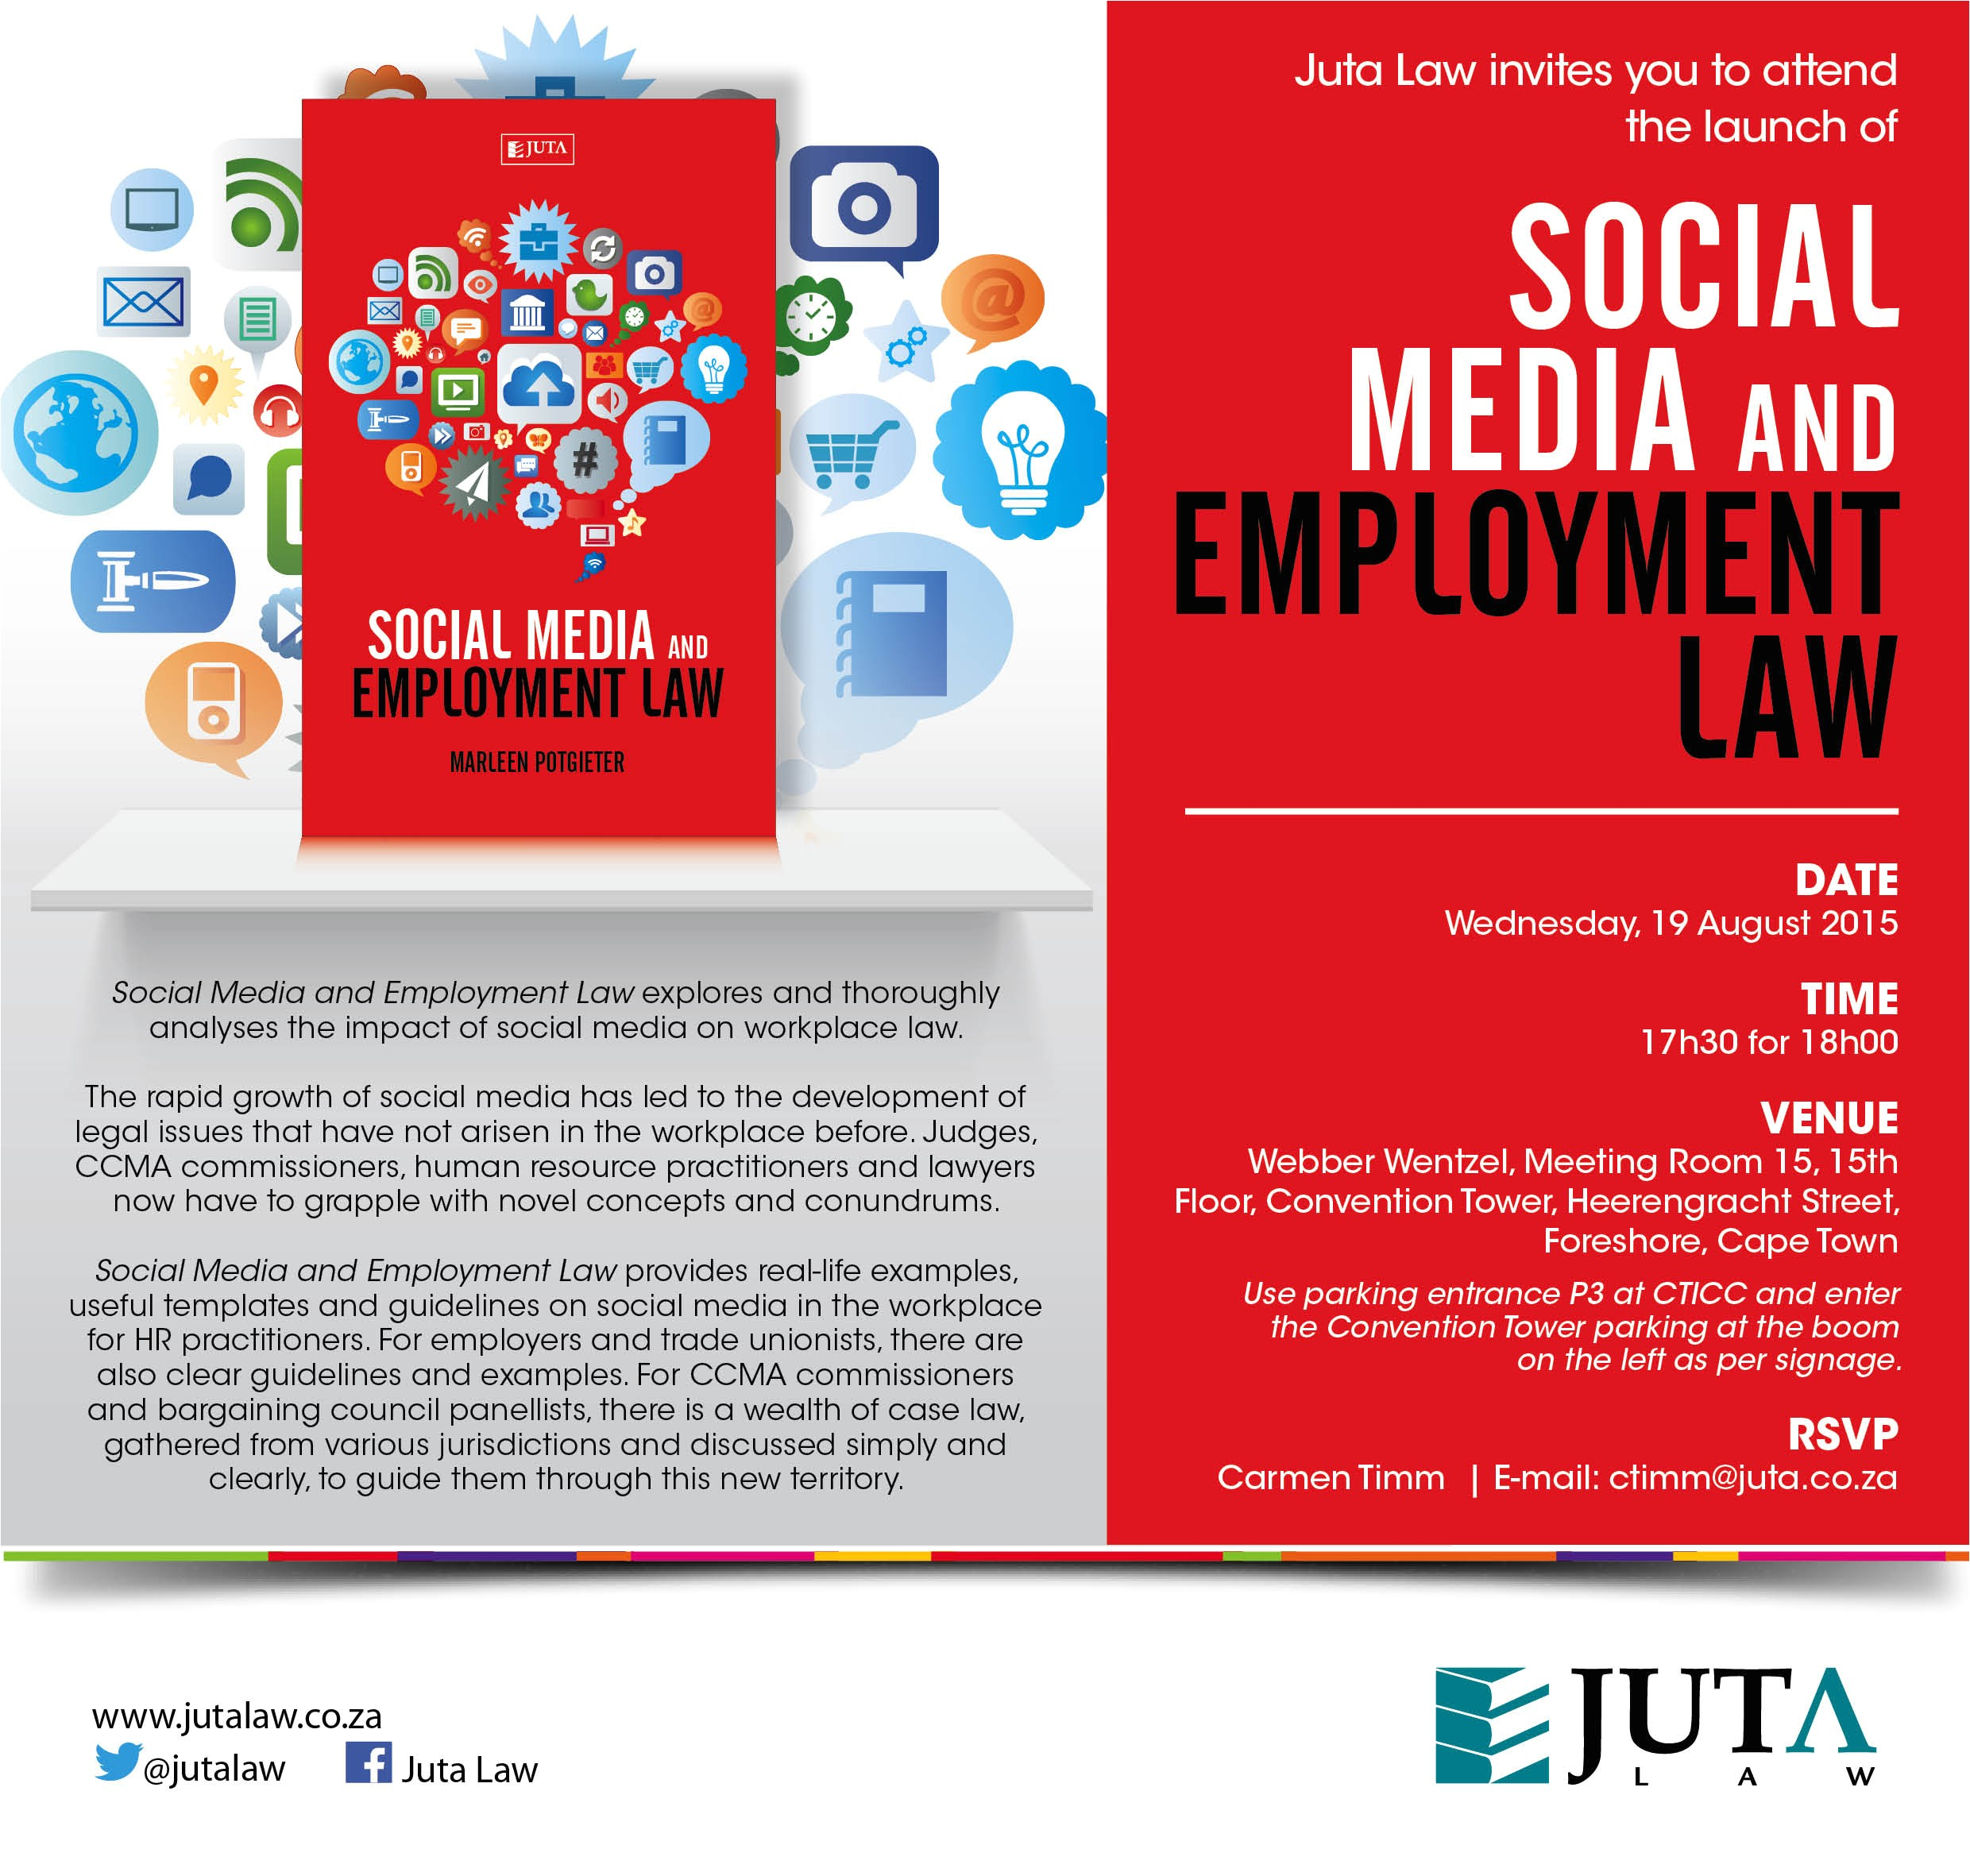 invitation to social media employment law launch